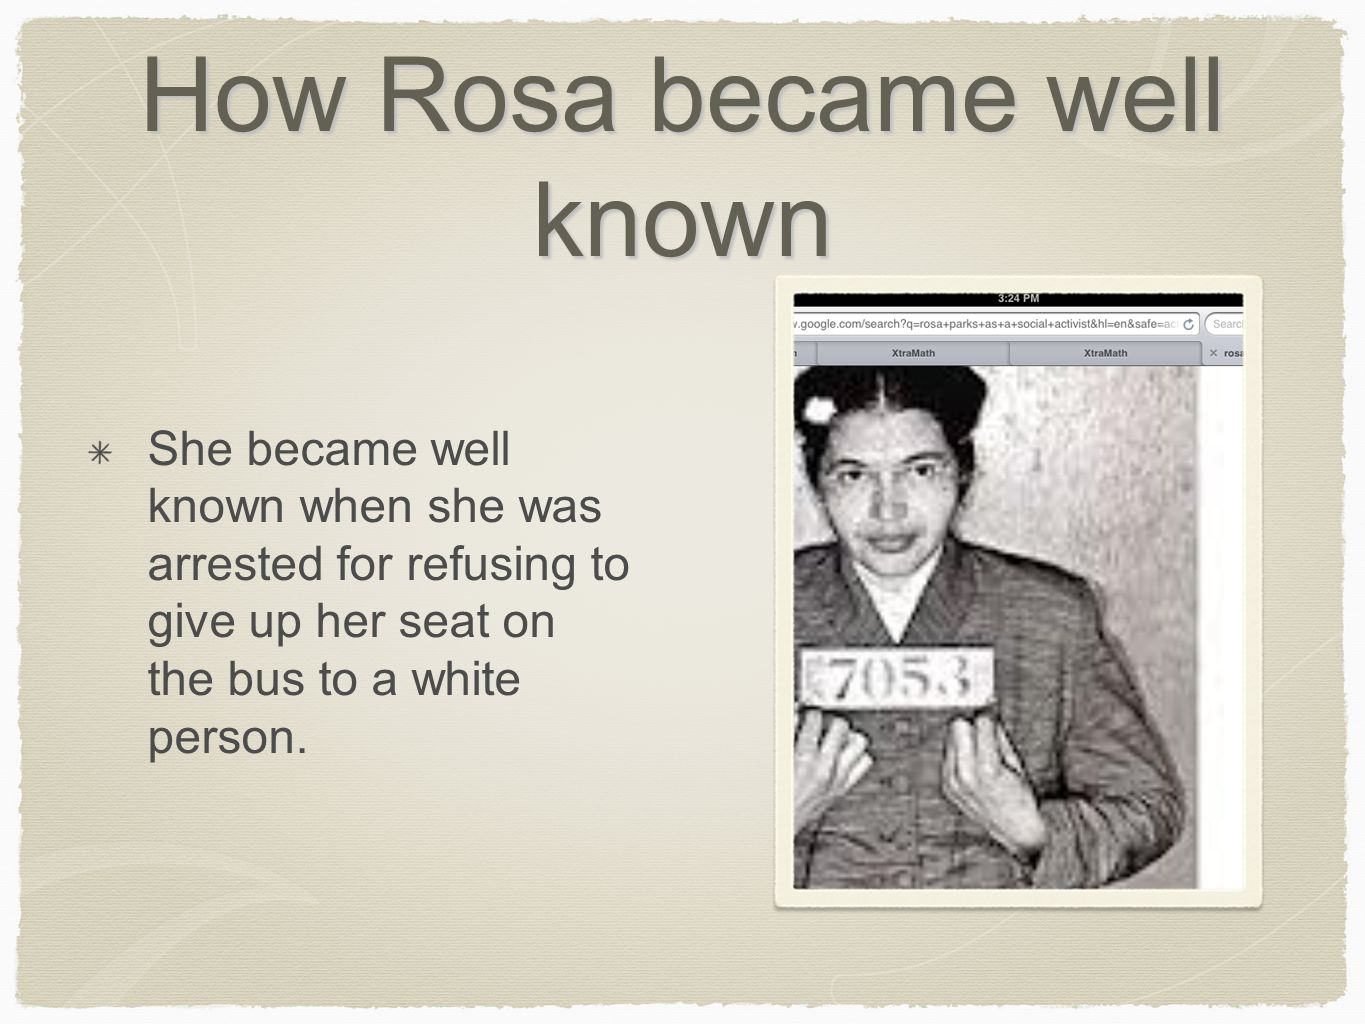 How Rosa became well known She became well known when she was arrested for refusing to give up her seat on the bus to a white person.